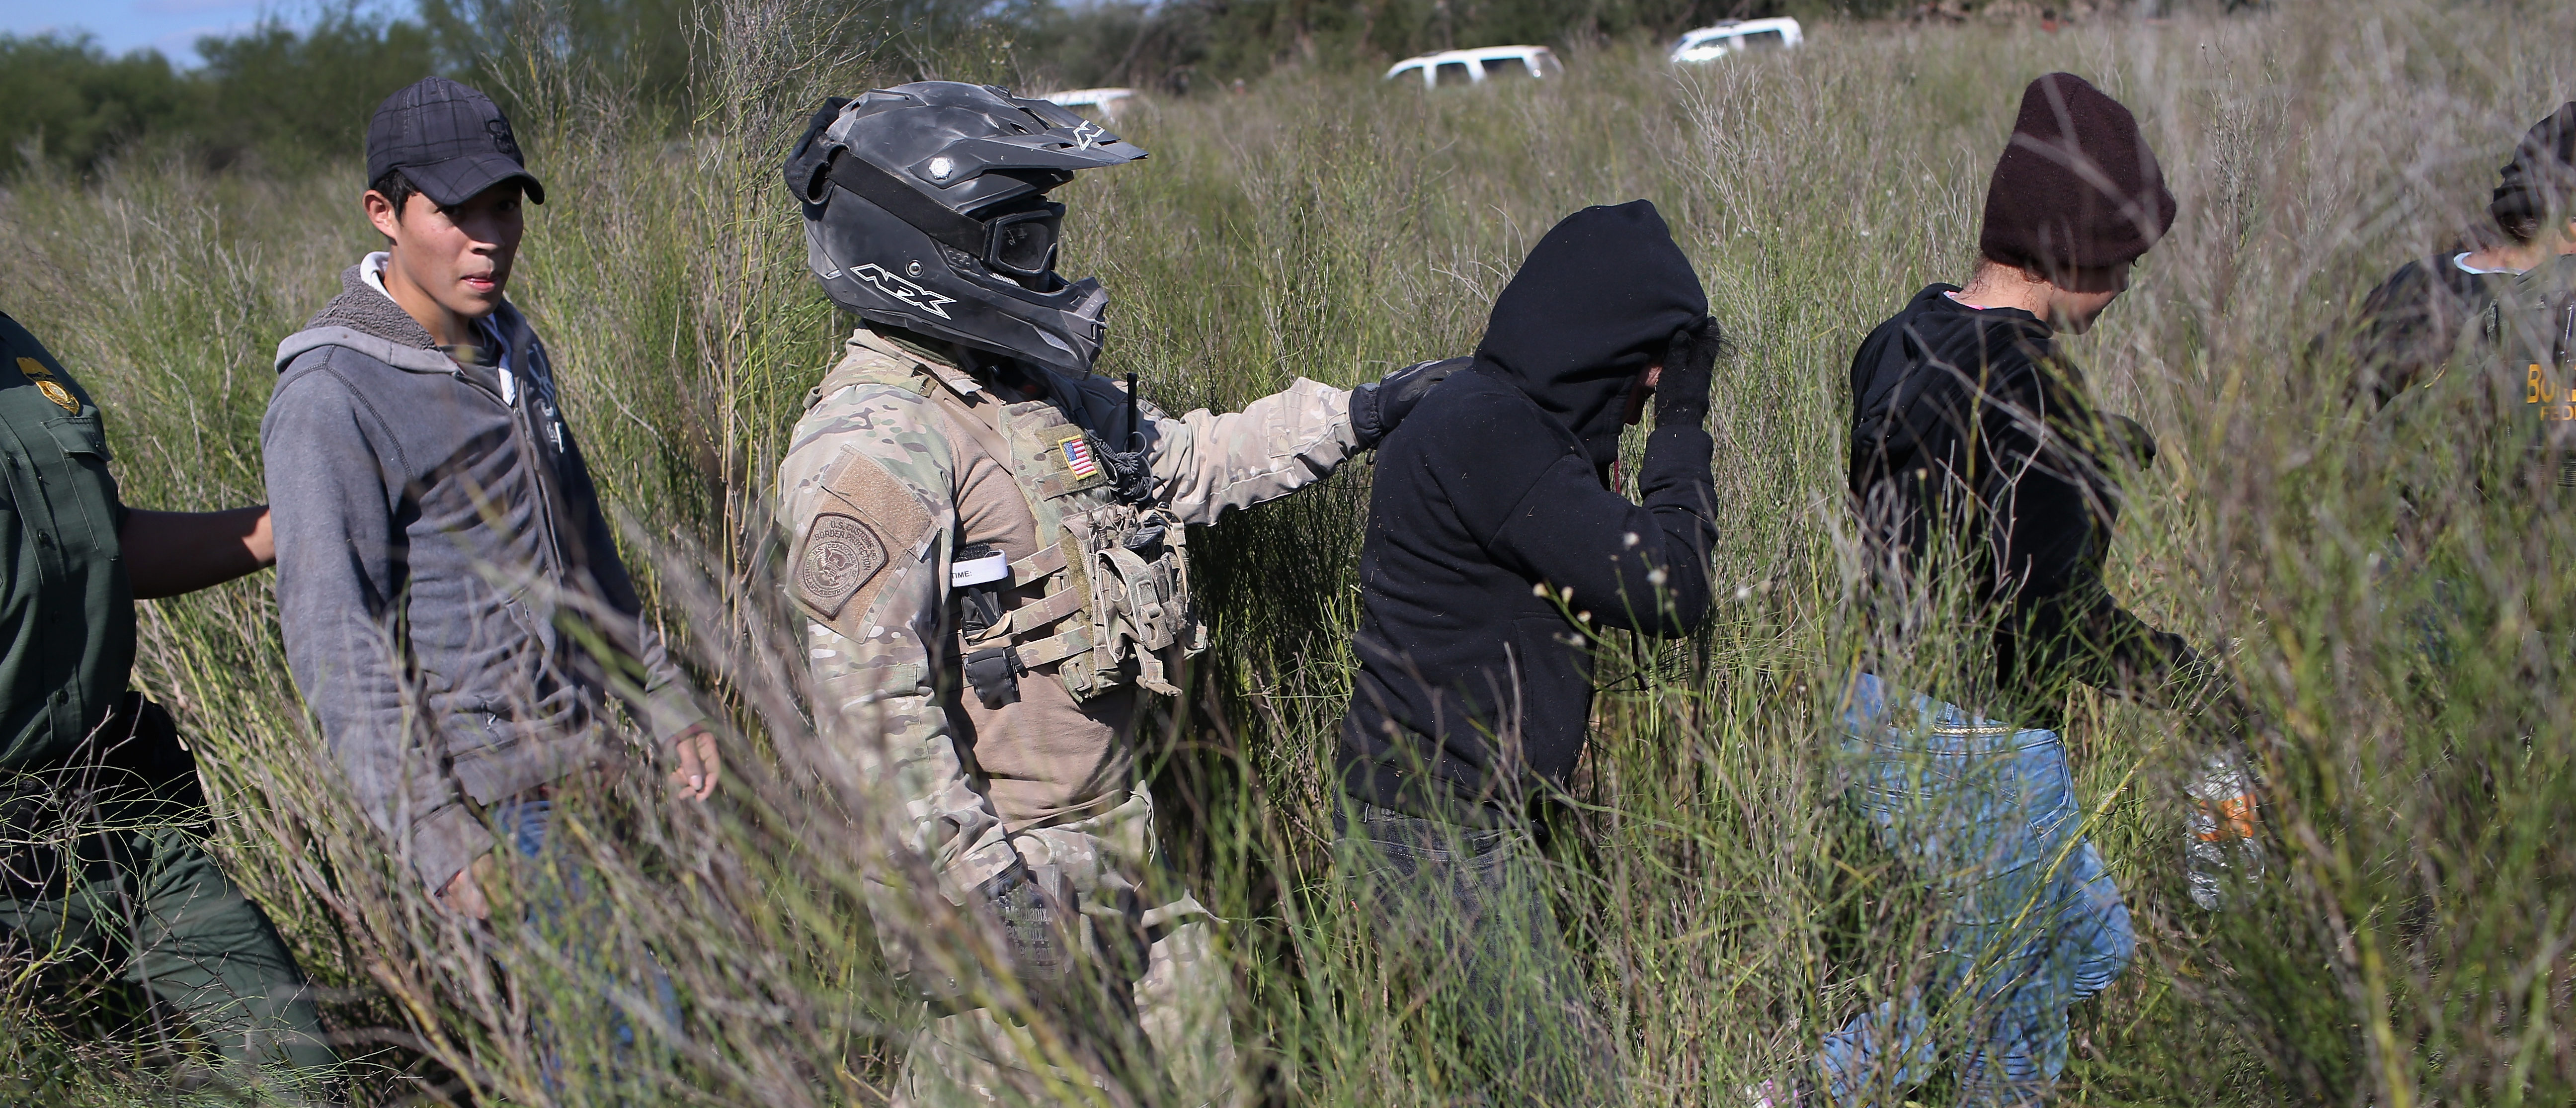 RIO GRANDE CITY, TX - DECEMBER 07: A U.S. Border Patrol agent leads undocumented immigrants after capturing them near the U.S.-Mexico border on December 7, 2015 near Rio Grande City, Texas. Border Patrol agents continue to detain hundreds of thousands of undocumented immigrants trying to avoid capture after crossing into the United States, even as migrant families and unaccompanied minors from Central America cross and turn themselves in to the Border Patrol to seek assylum. (Photo by John Moore/Getty Images)